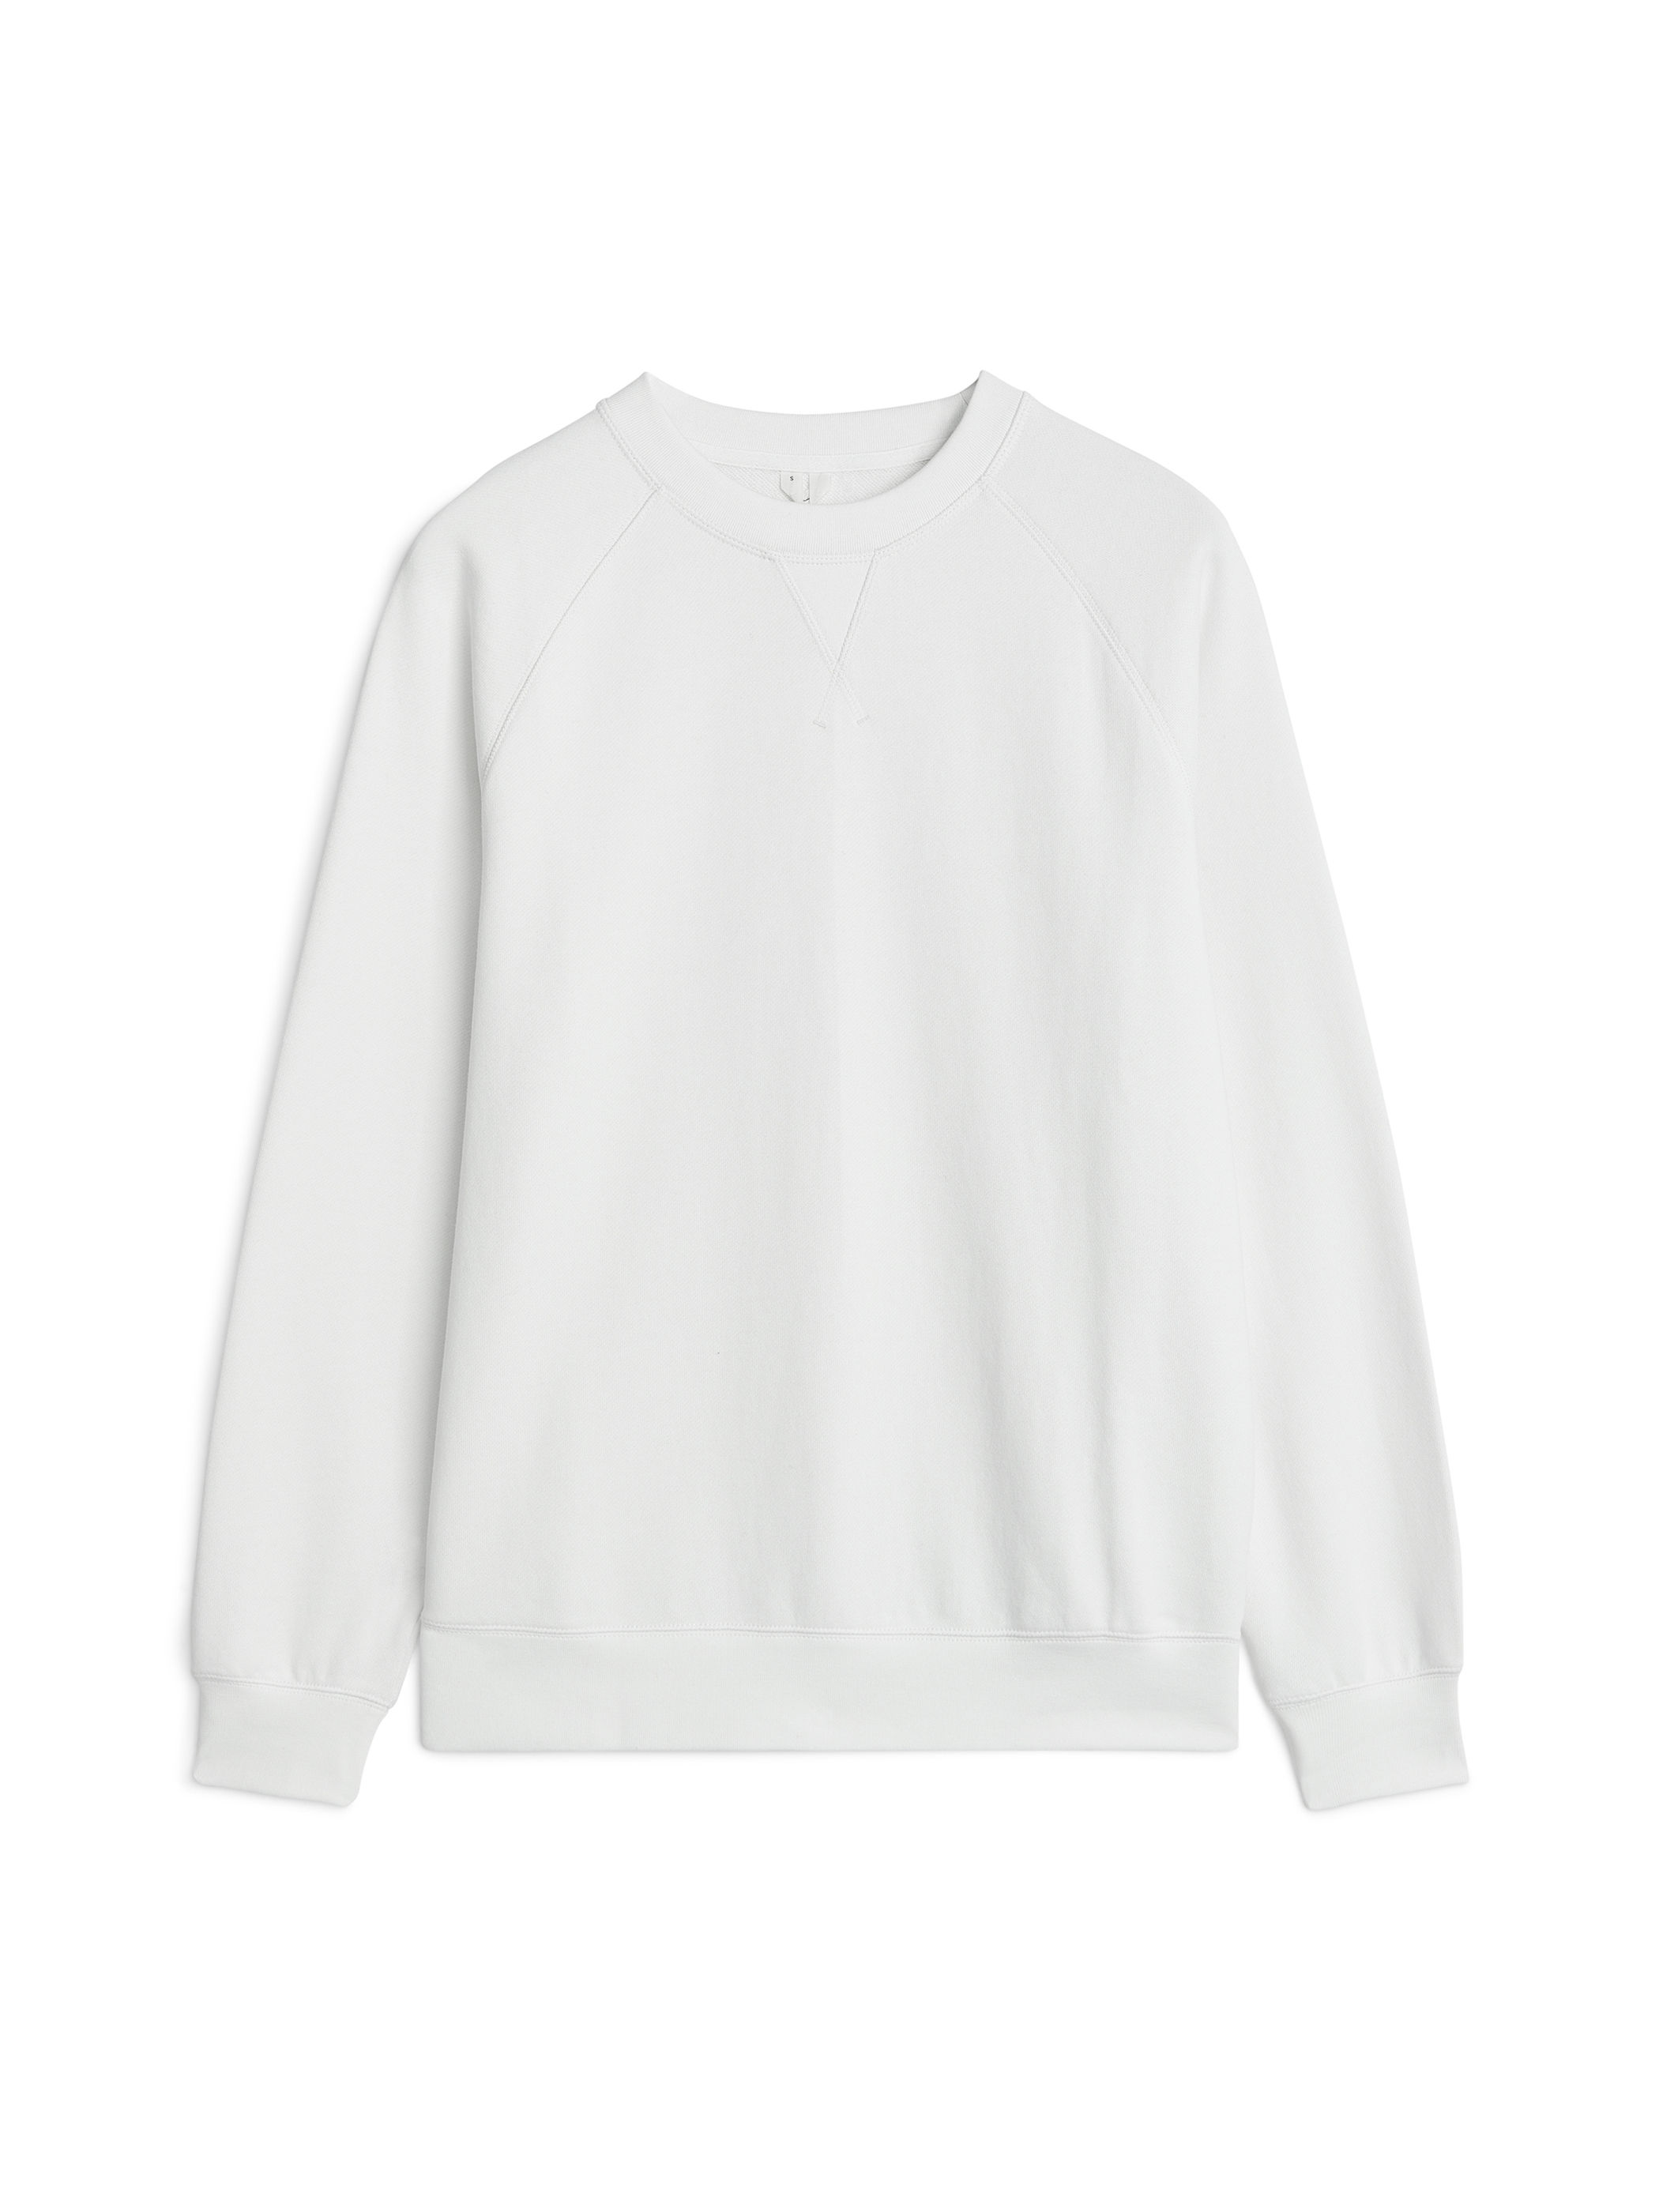 Fabric Swatch image of Arket pima cotton sweatshirt in white